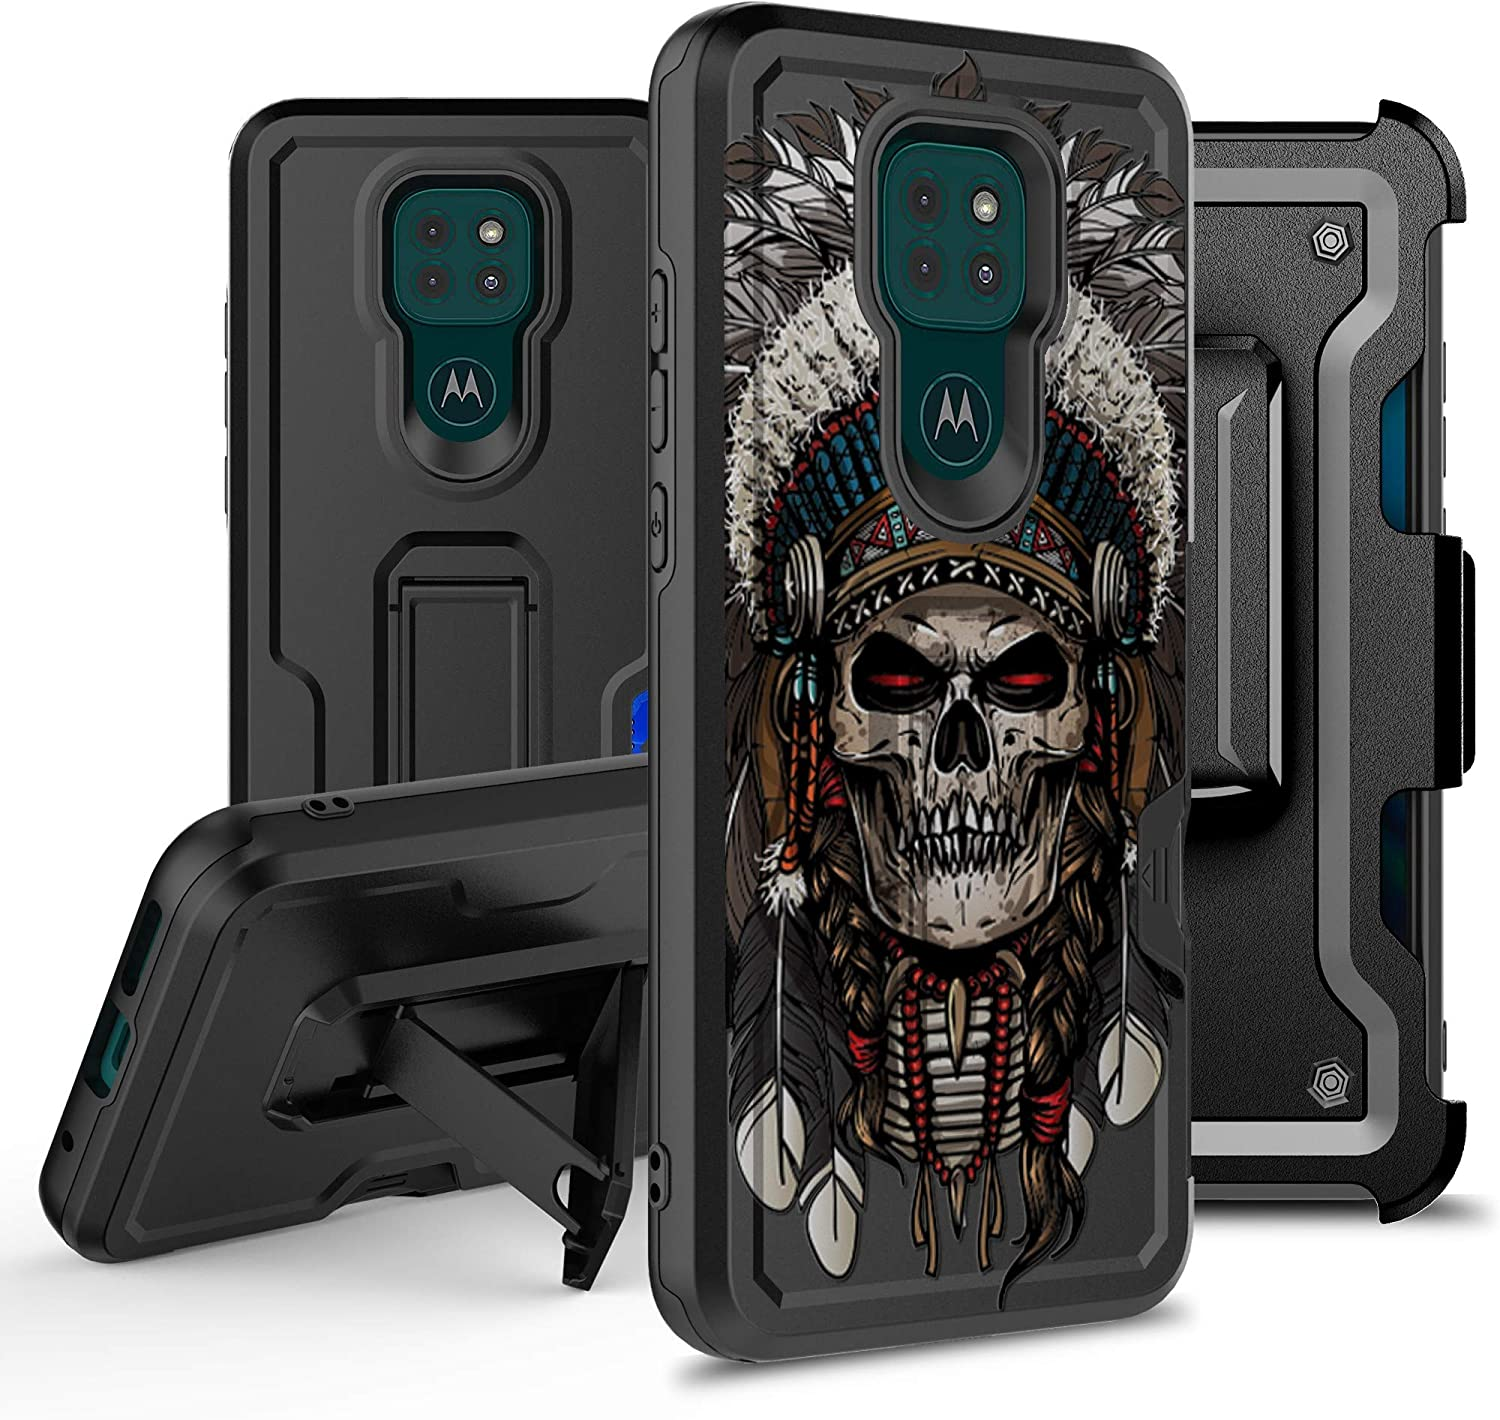 BEYOND CELL Armor New York Mall Kombo Case Compatible 2021 G 6 Moto sold out with Play